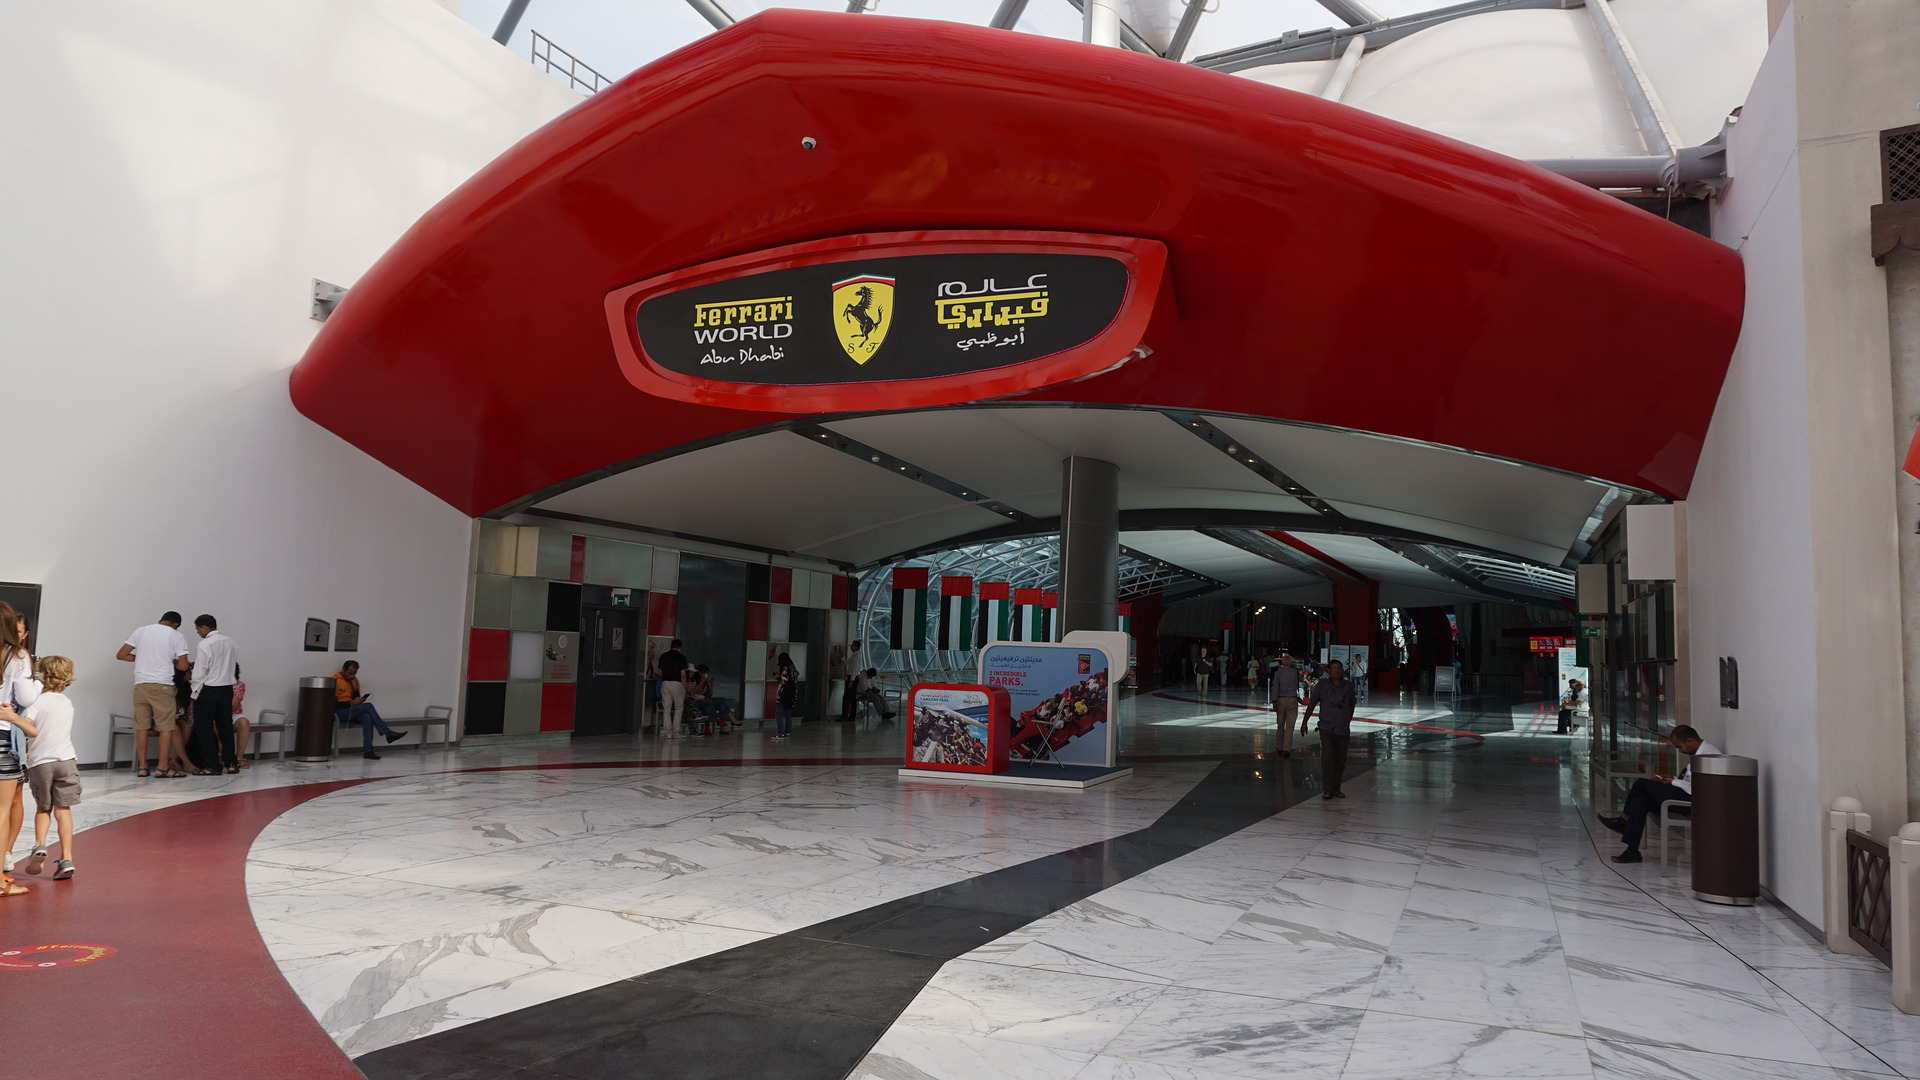 Visit Sheikh Zayed Grand Mosque-Ferrari World Abu Dhabi